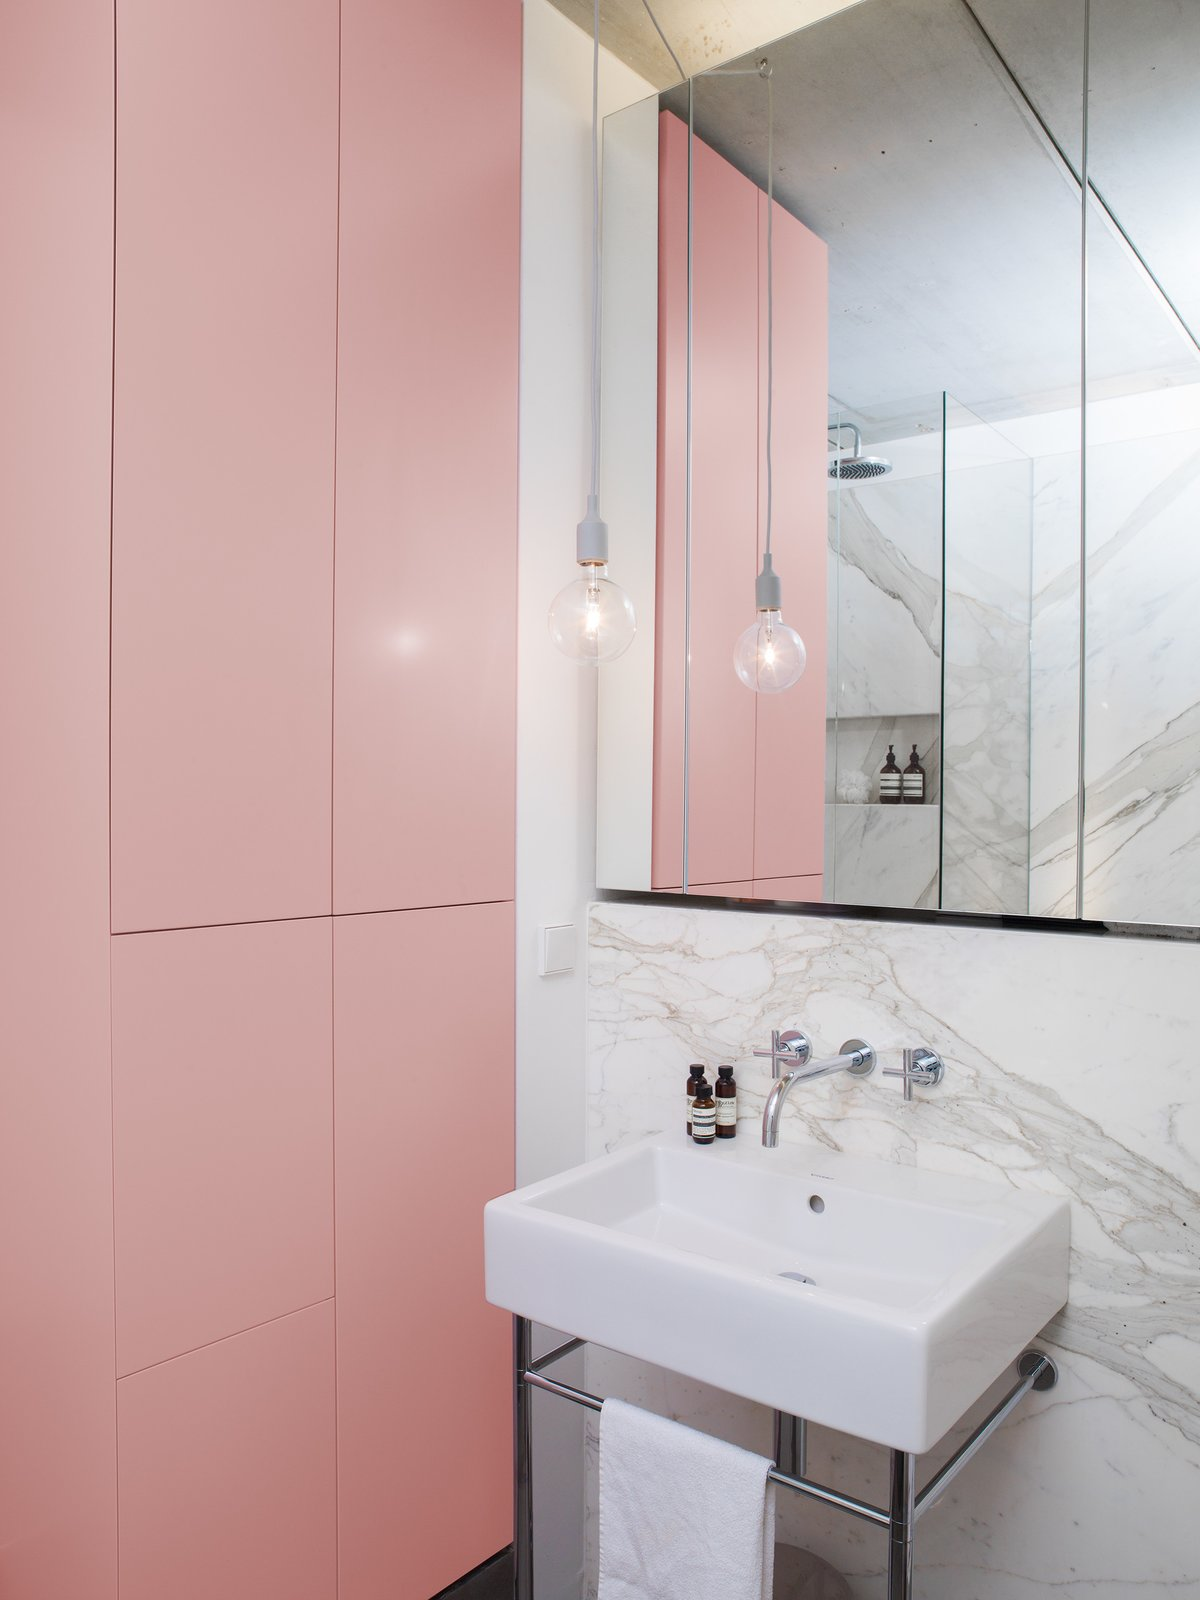 Bath Room, Pendant Lighting, Marble Wall, Wall Mount Sink, Corner Shower, and Pedestal Sink Statuario marble appears again in the bathroom, where it contrasts pink cabinets that create ample room for storage.  This Berlin Apartment Manages to Be Totally Adorable in Only 900 Square Feet by Allie Weiss